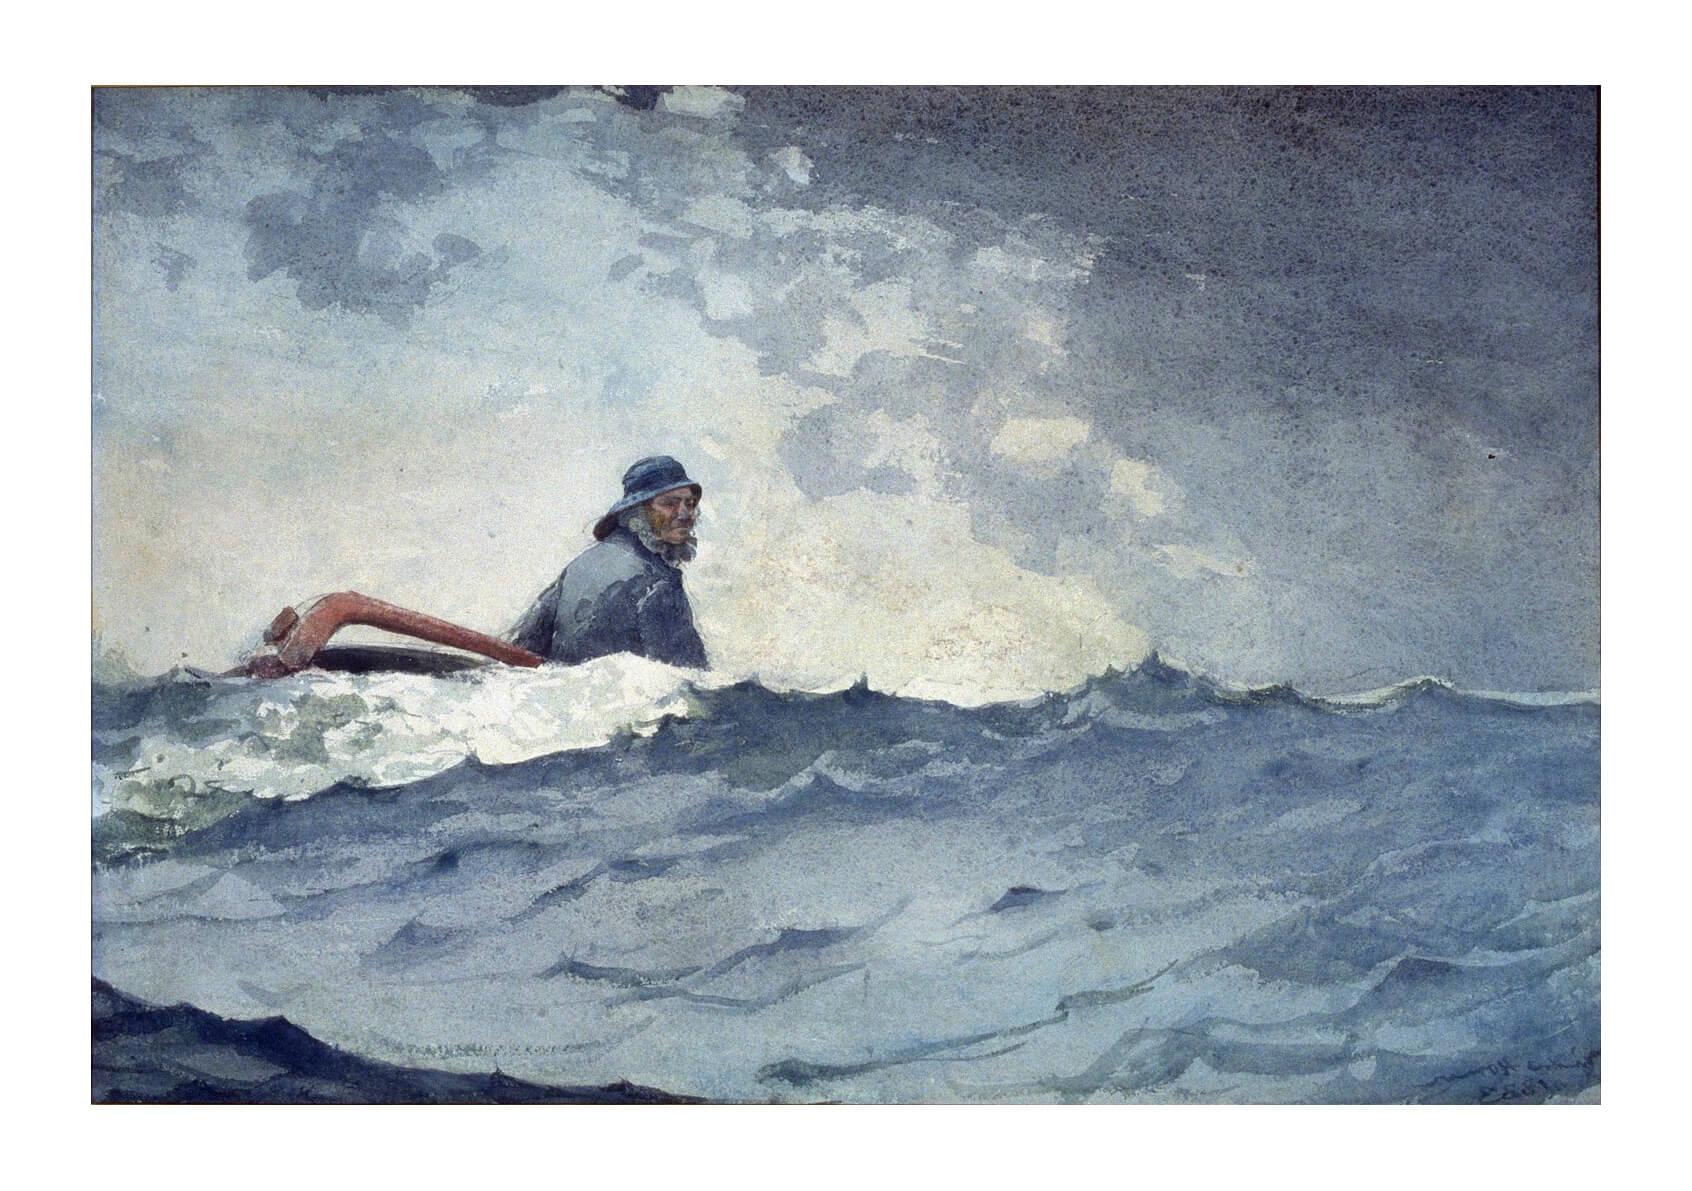 Winslow Homer - A Swell of the Ocean